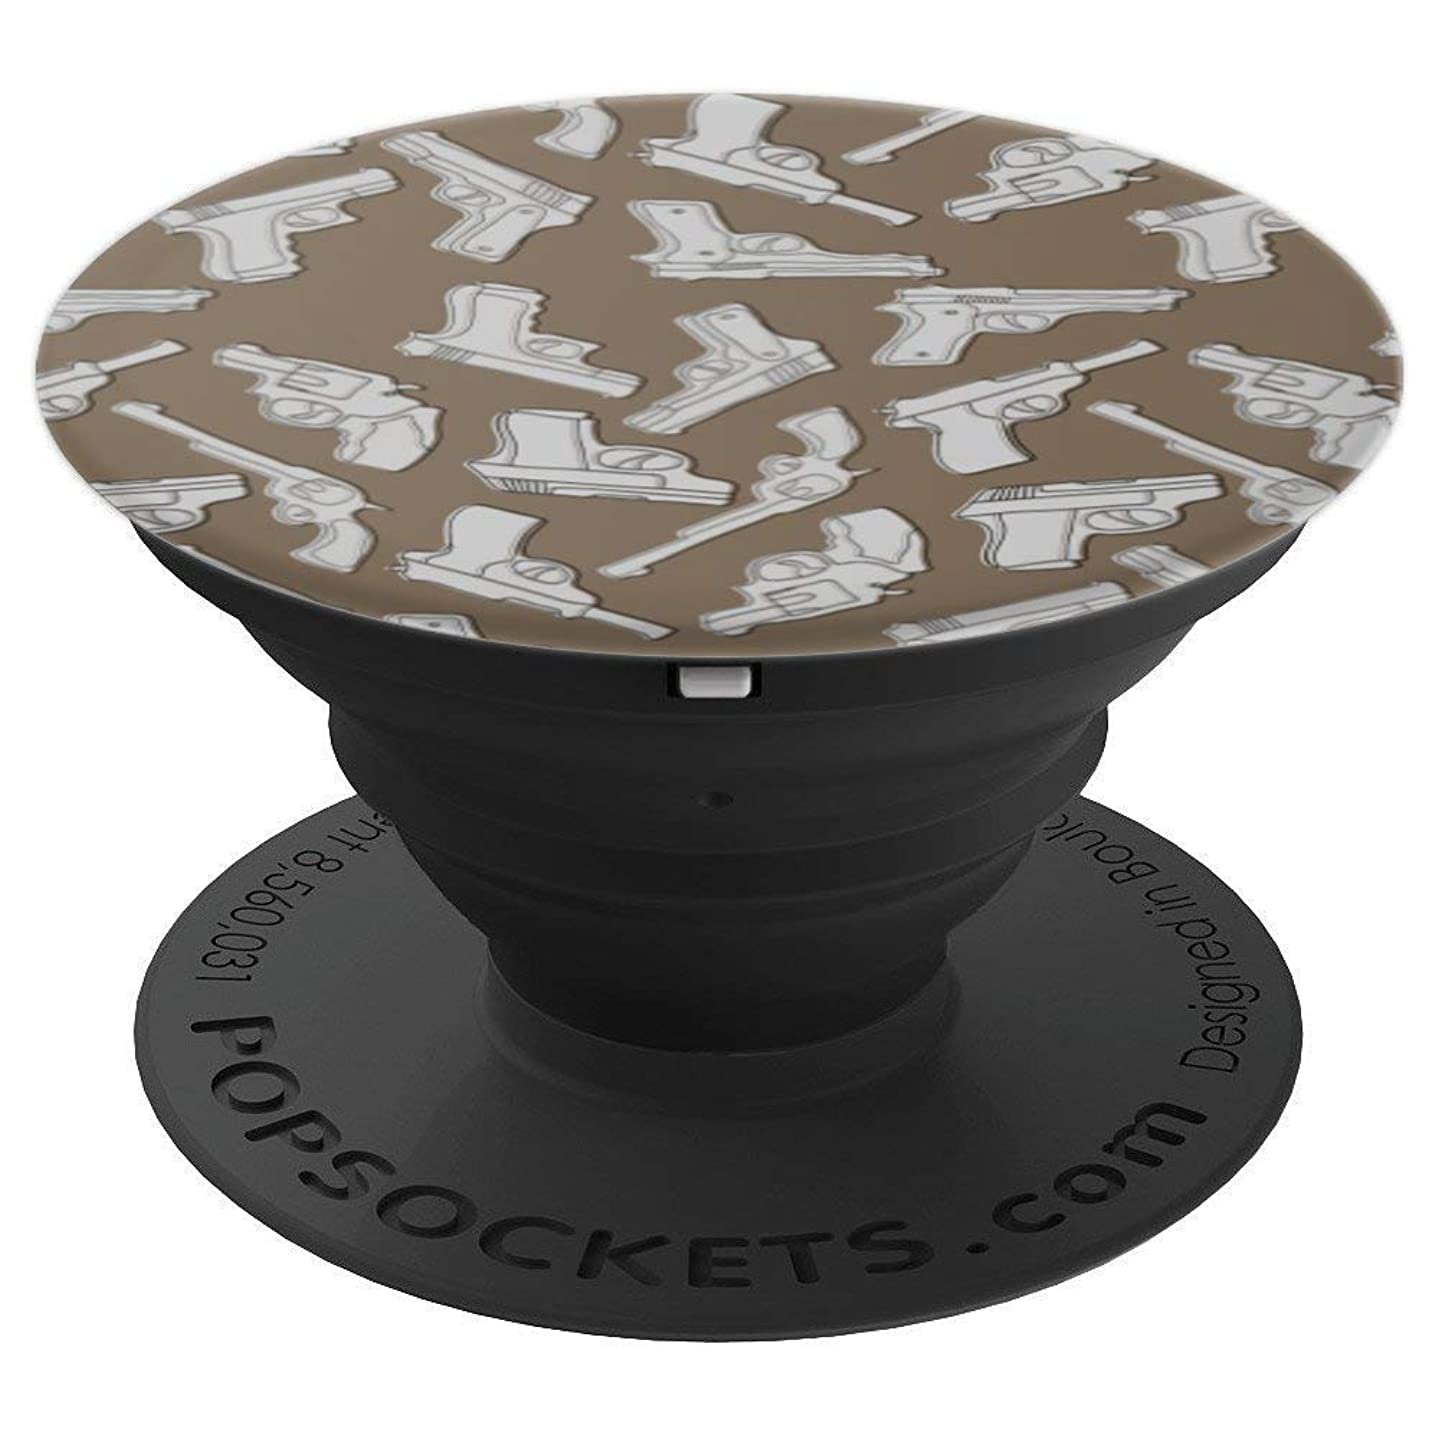 Guns Pop Top Giant Grip Knobs Thingy Gift. - PopSockets Grip and Stand for Phones and Tablets